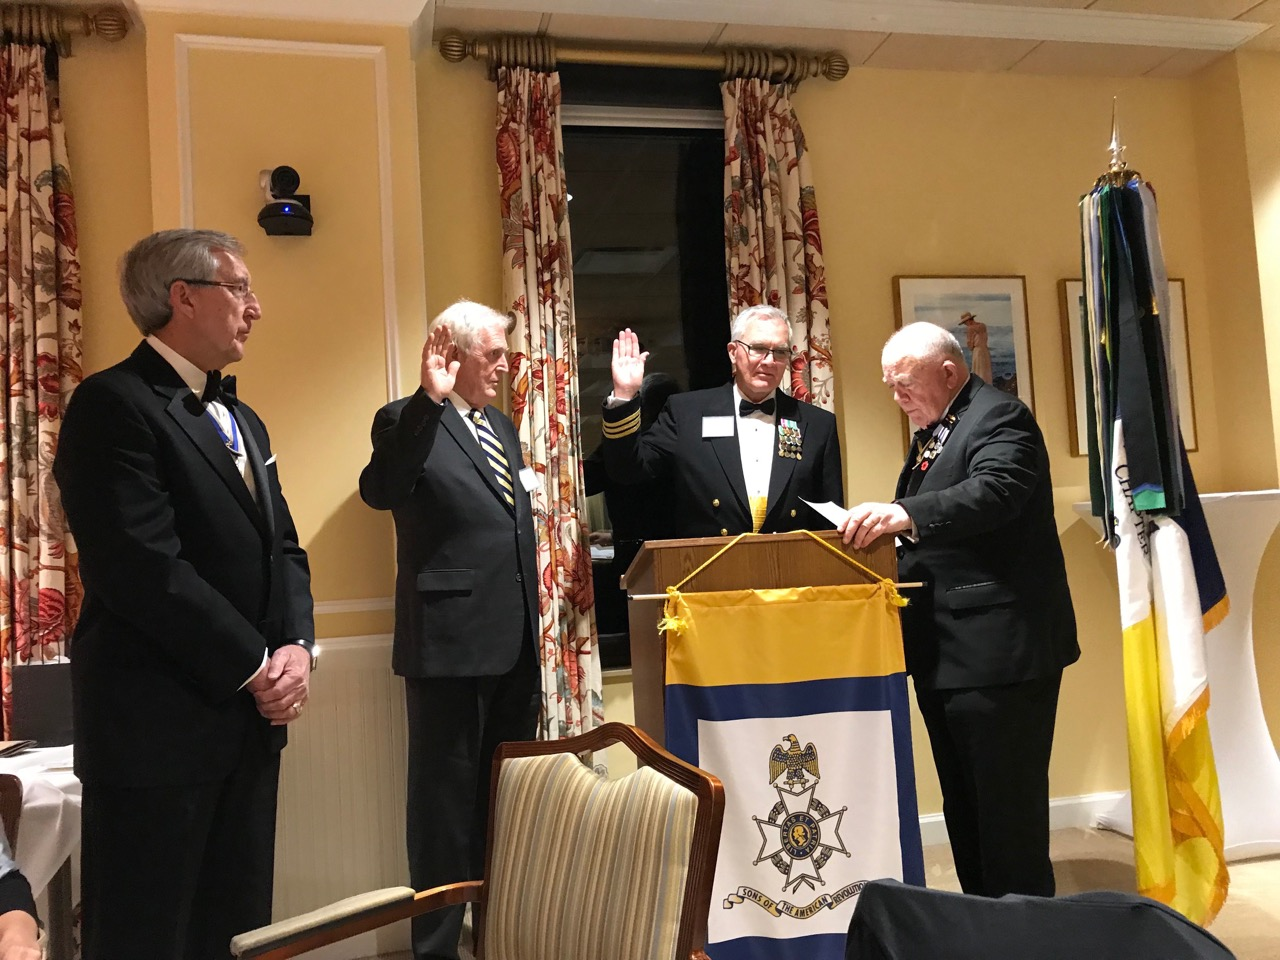 New members Lindsey Jones and Mark Jumper are sworn into the chapter by VASSAR President Patrick Kelly. President Ken Hawkins looks on.